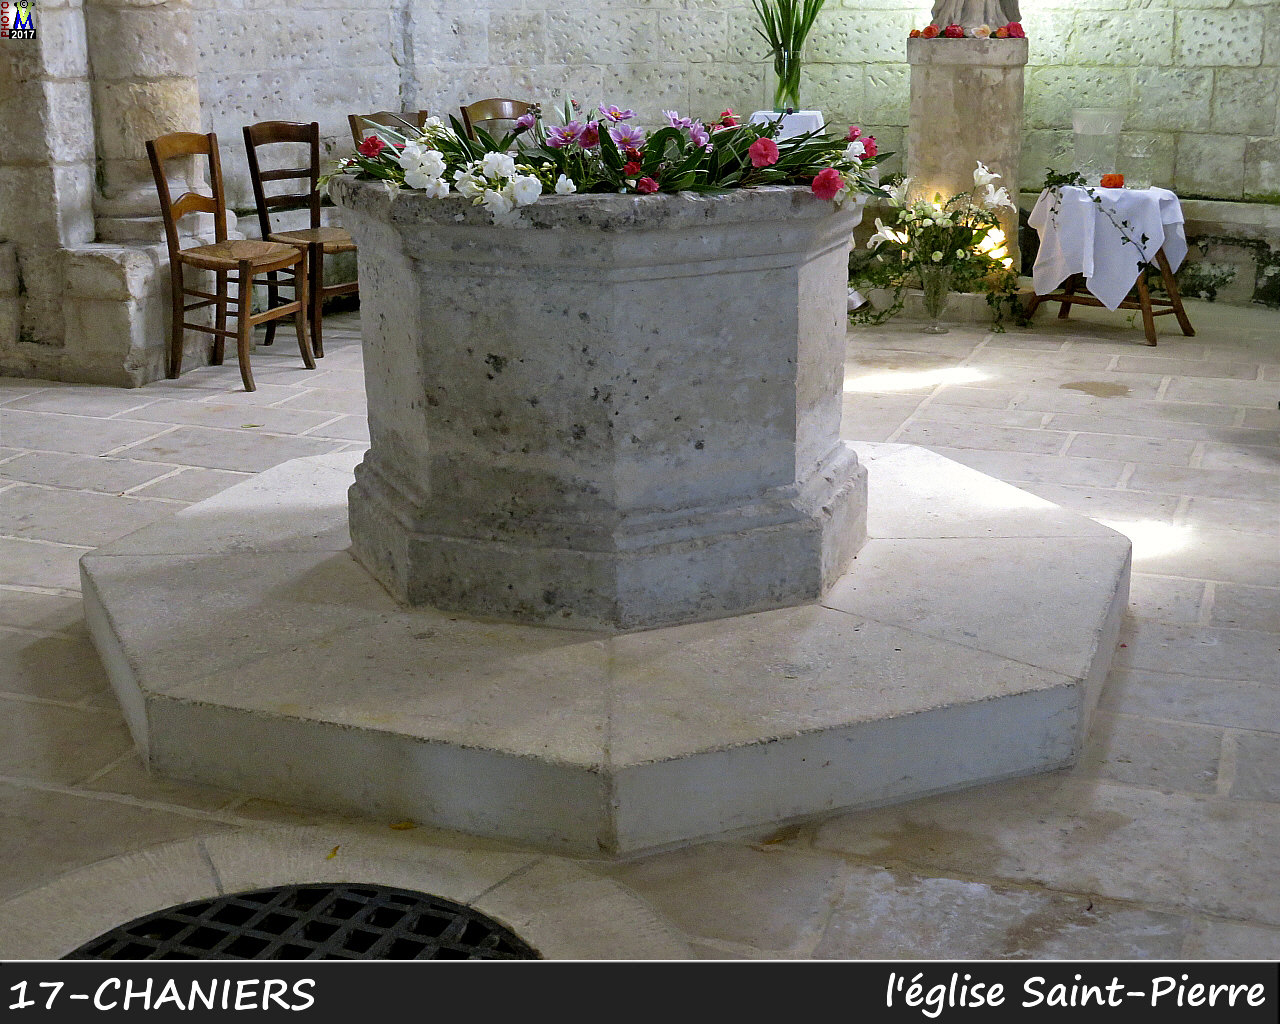 17CHANIERS_eglise_1150.jpg